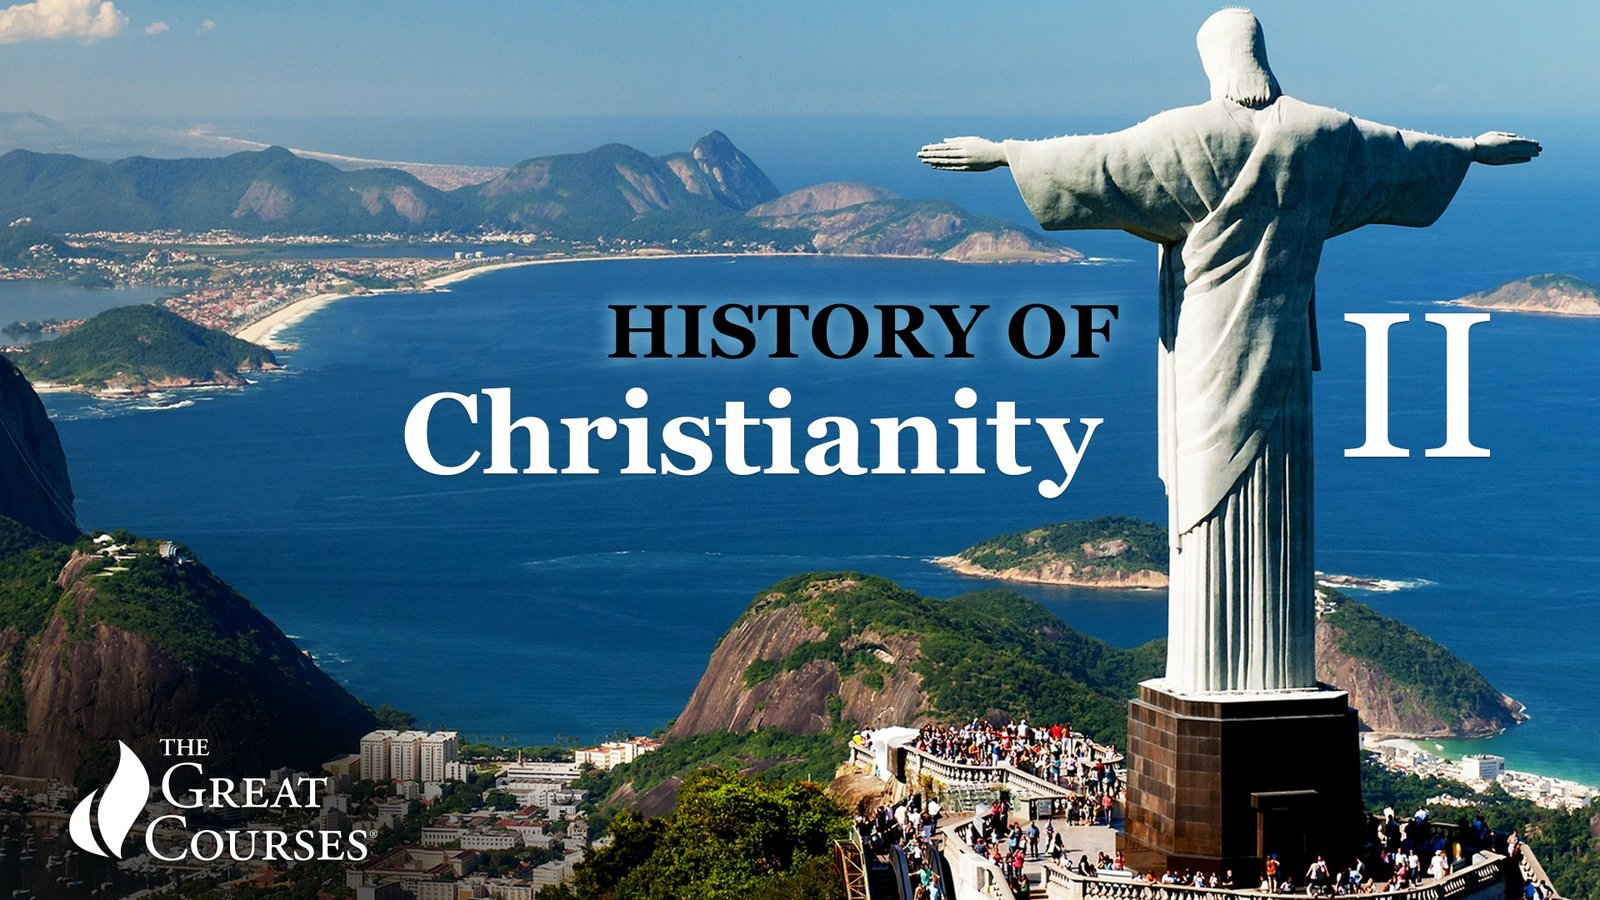 The History of Christianity II - From the Reformation to the Modern Megachurch